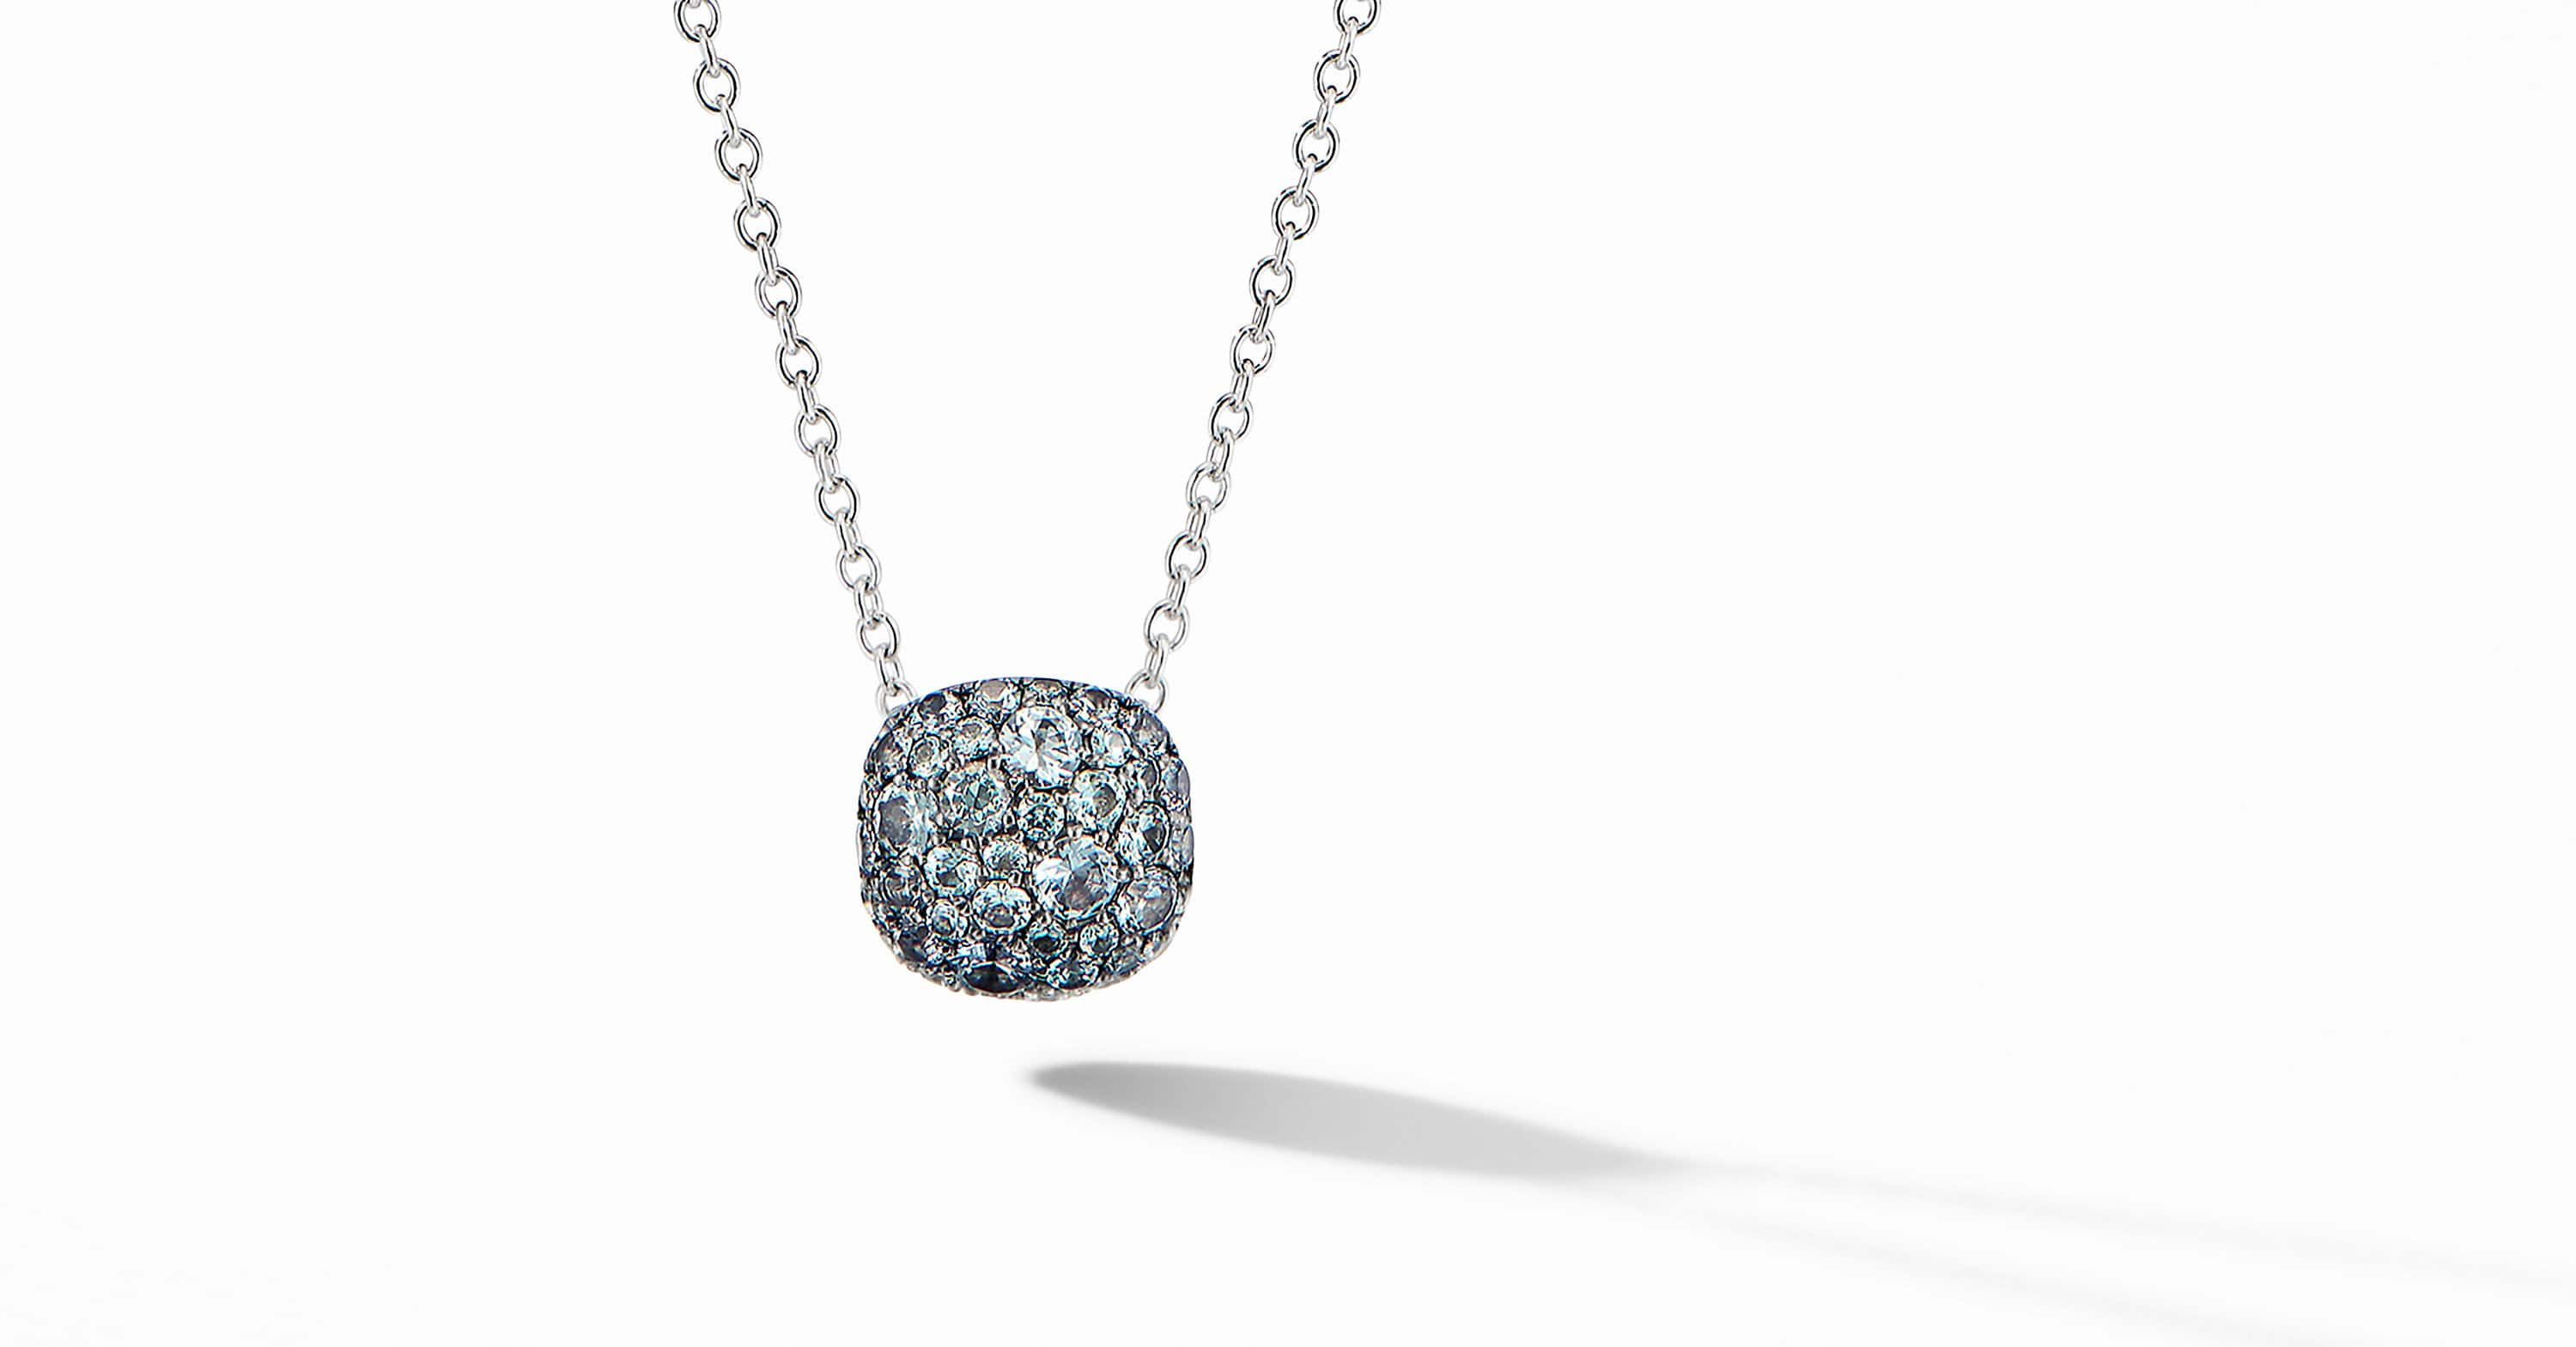 Cushion Stud Pendant Necklace in 18K White Gold